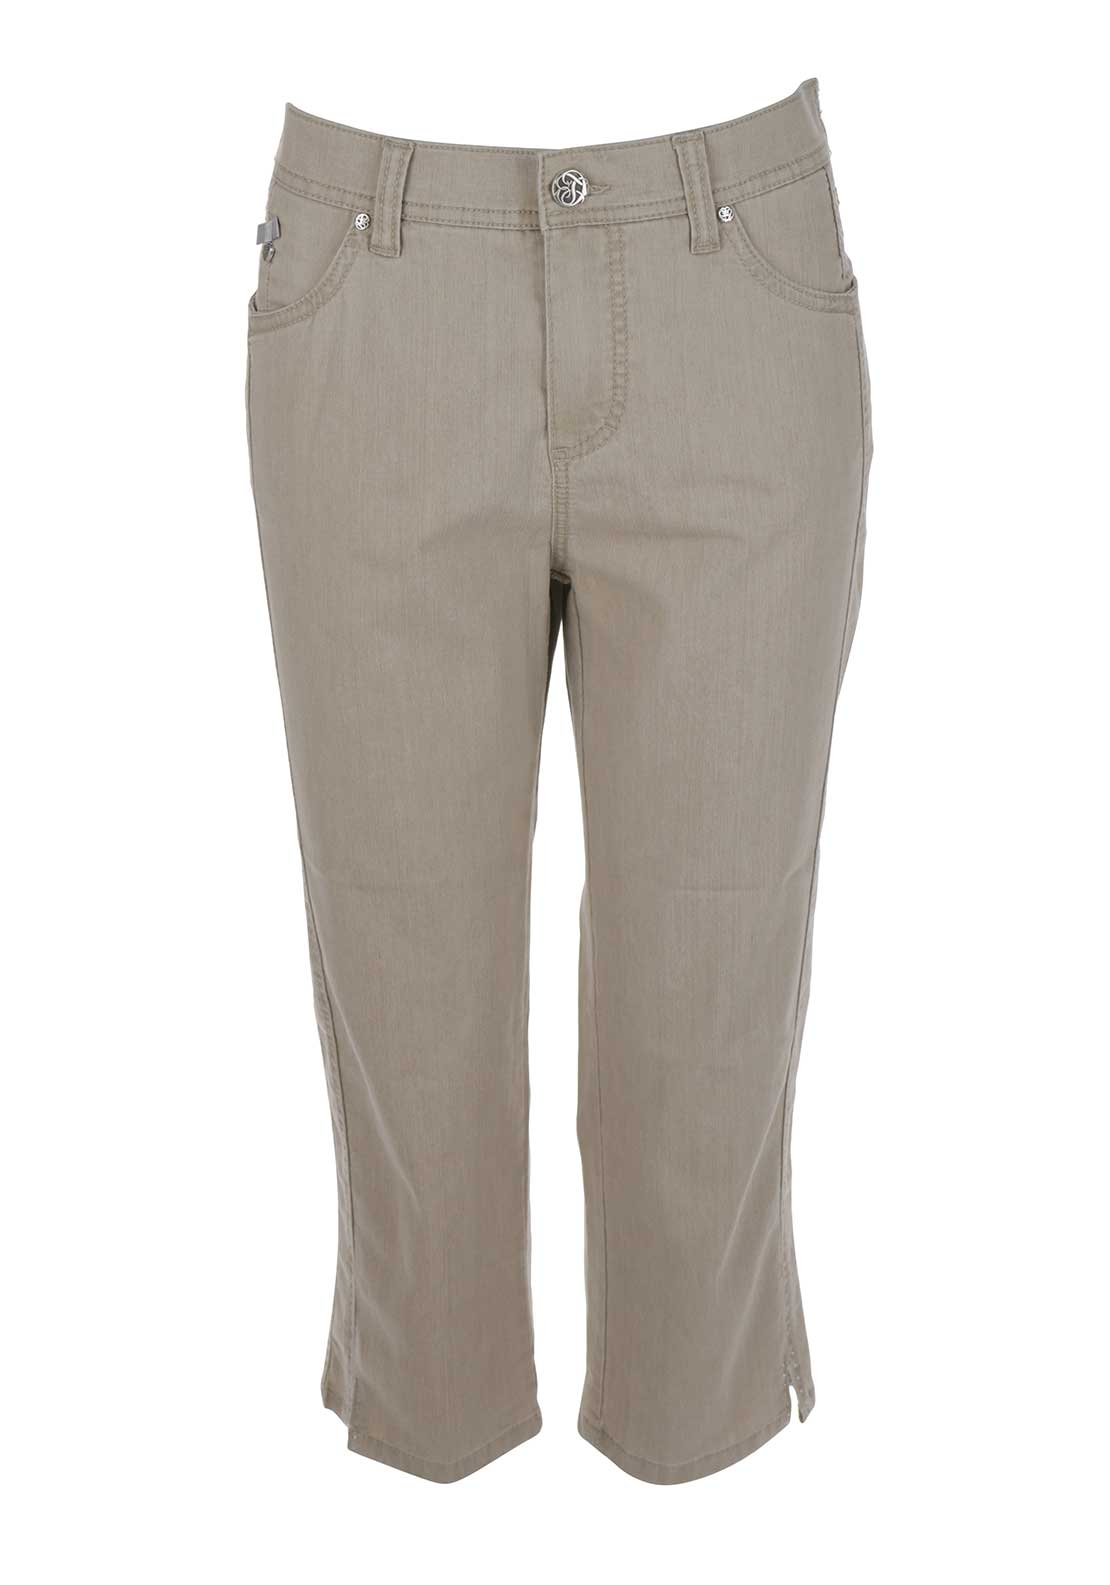 Anna Montana Dora Cropped 3/4 Length Straight Leg Jeans, Beige